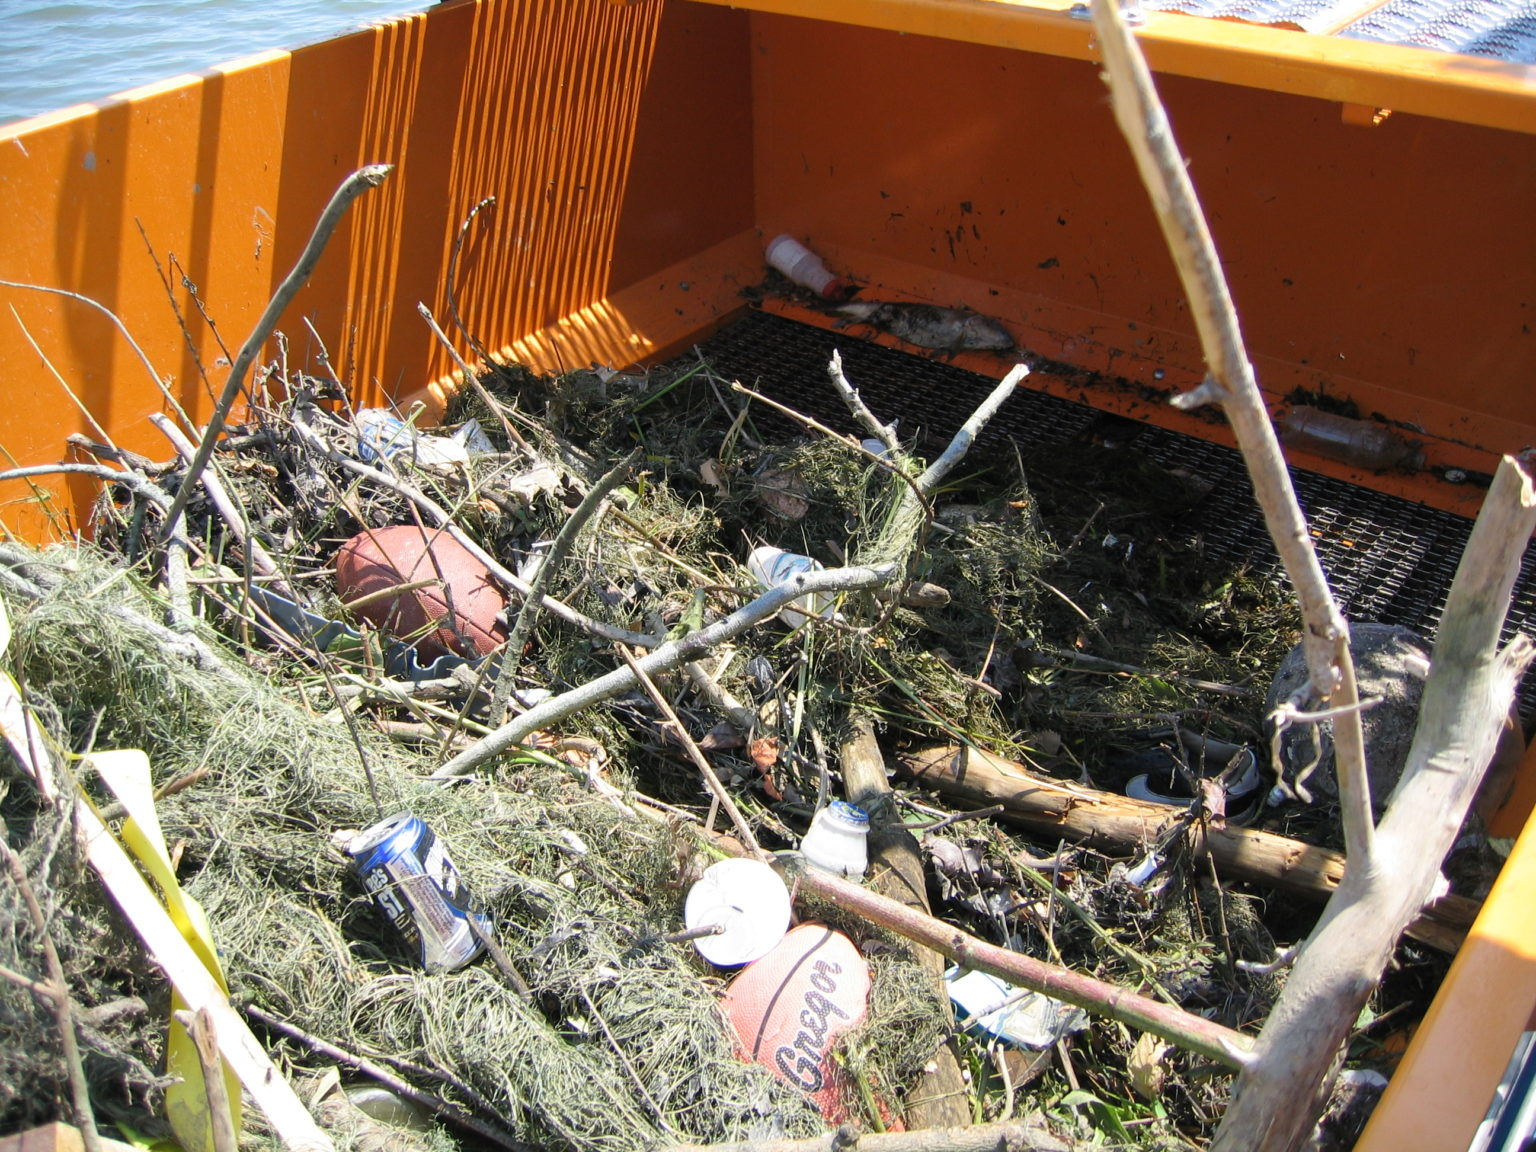 MC 202 with a load of debris